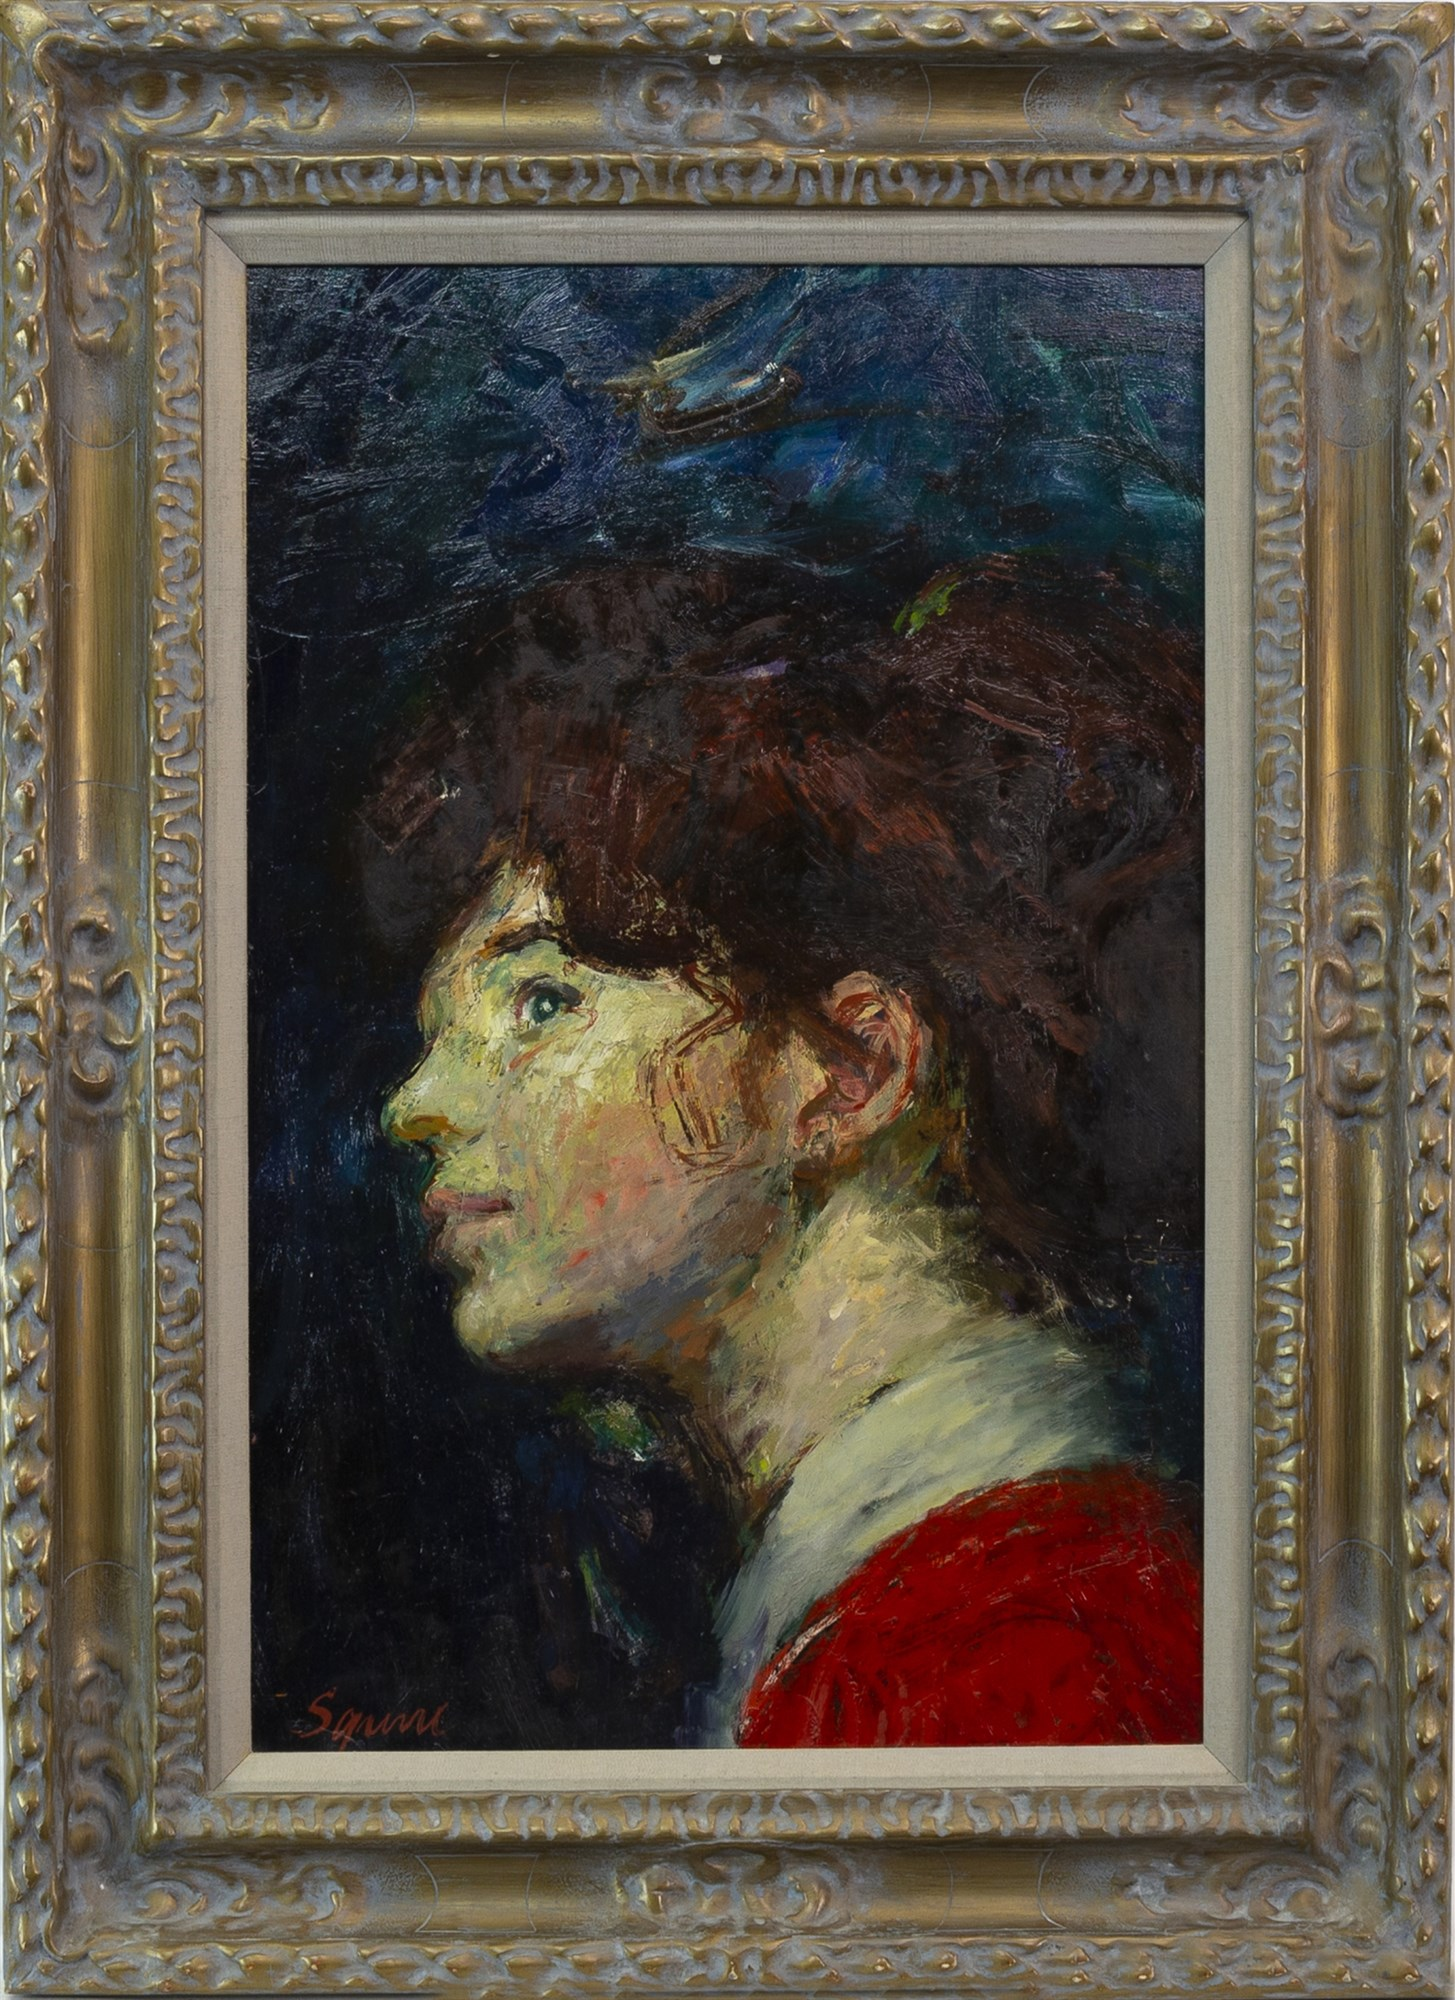 Lot 33 - THE PORTRAIT OF ELSA, AN OIL ON BOARD BY GEOFFREY SQUIRE